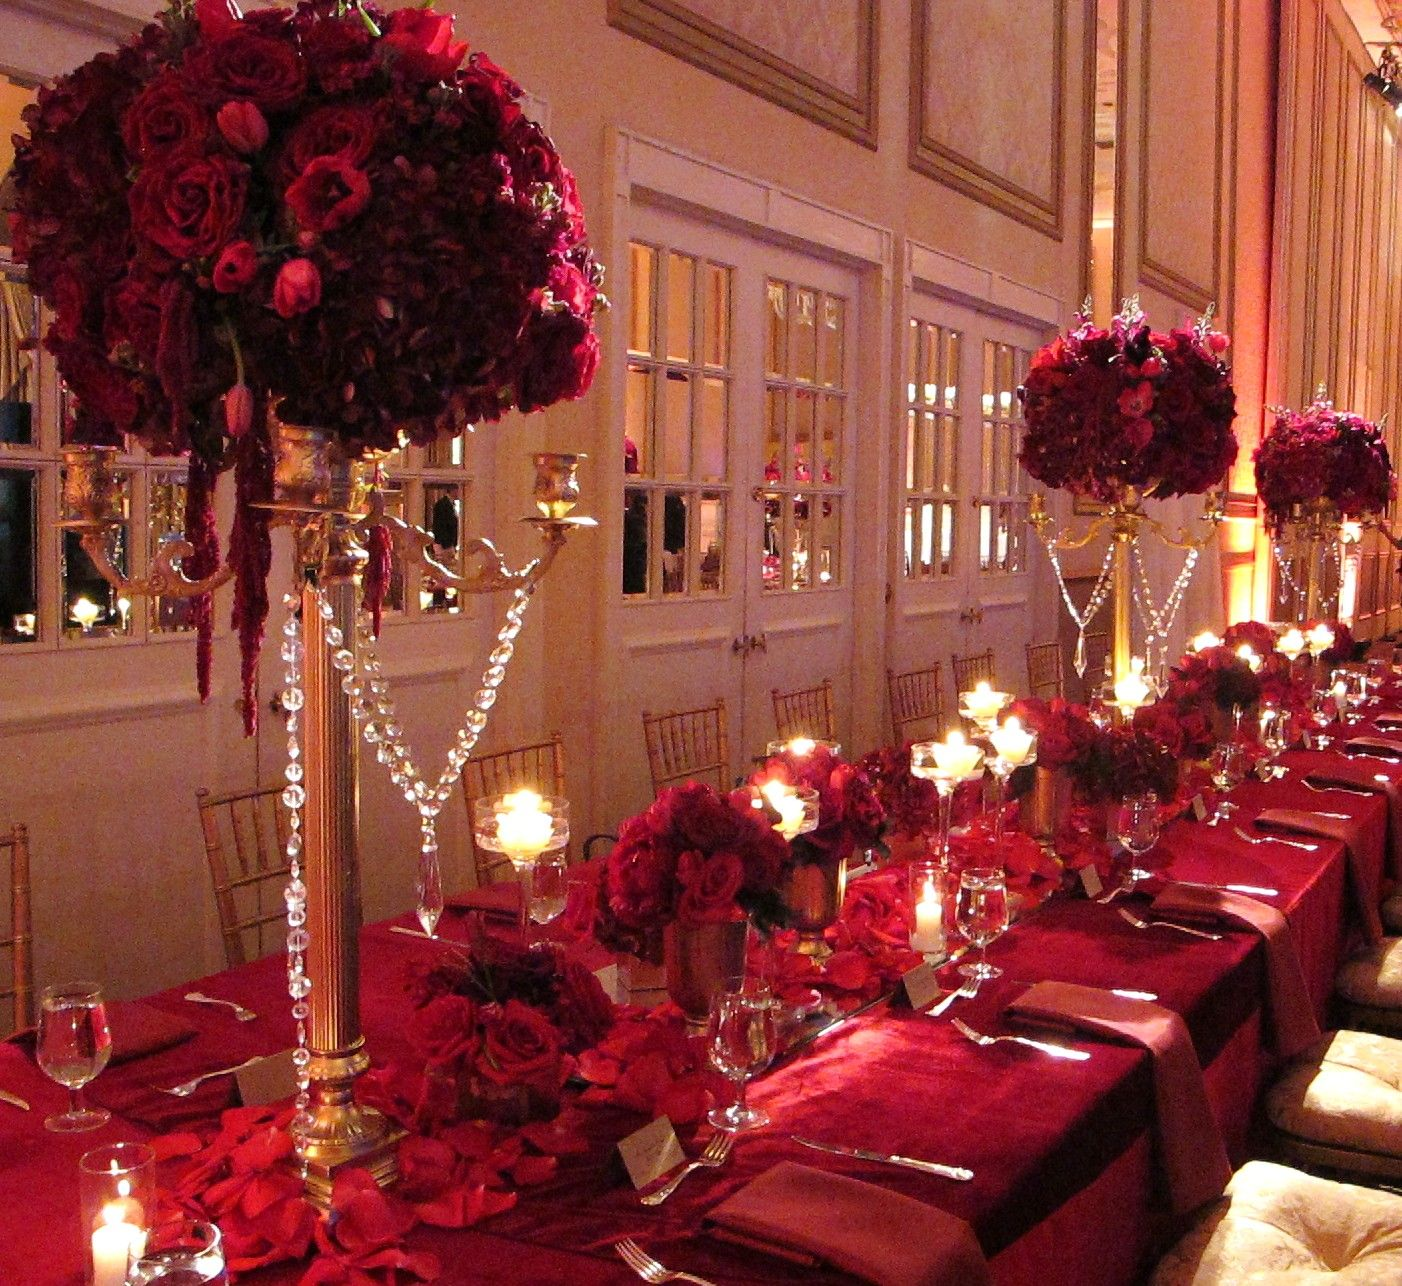 Wedding Table Ruby Wedding Table Decorations regal royal gold candelabra red roses shaadi pinterest marsala wedding table awesome decorations 2015